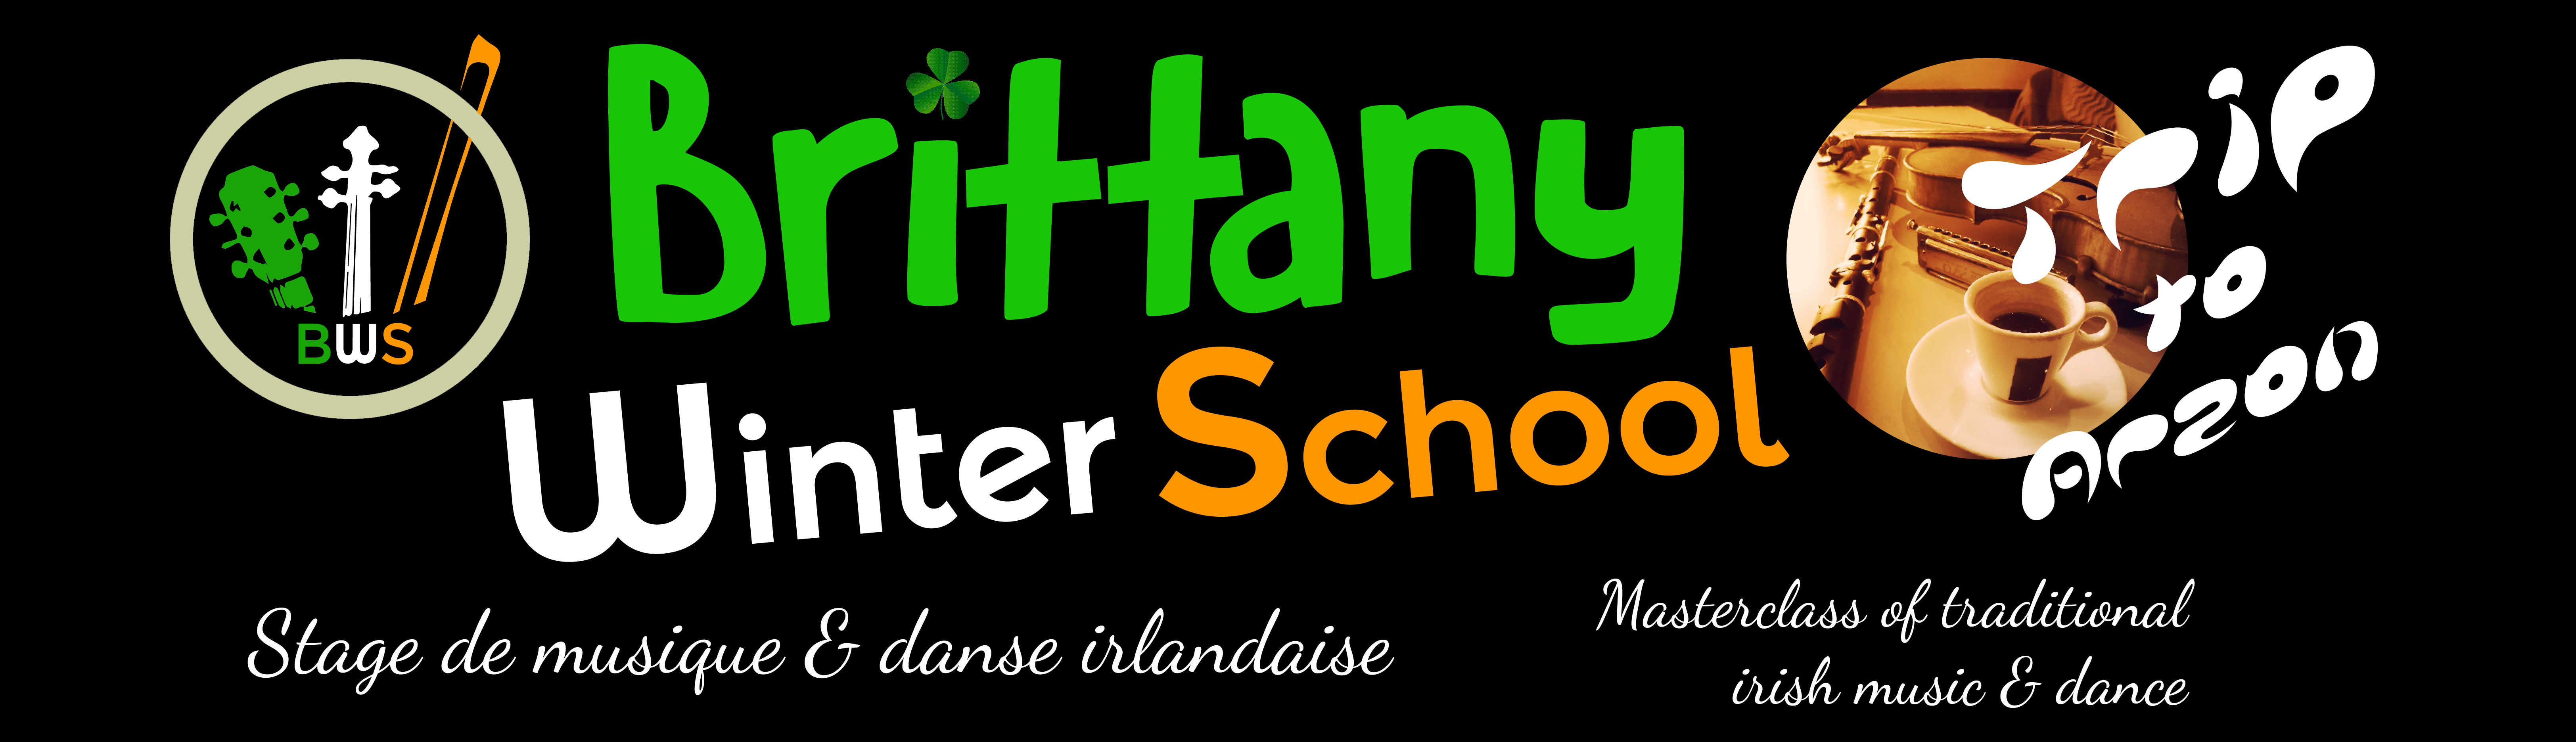 Brittany Winter School - [SITE OFFICIEL] Logo